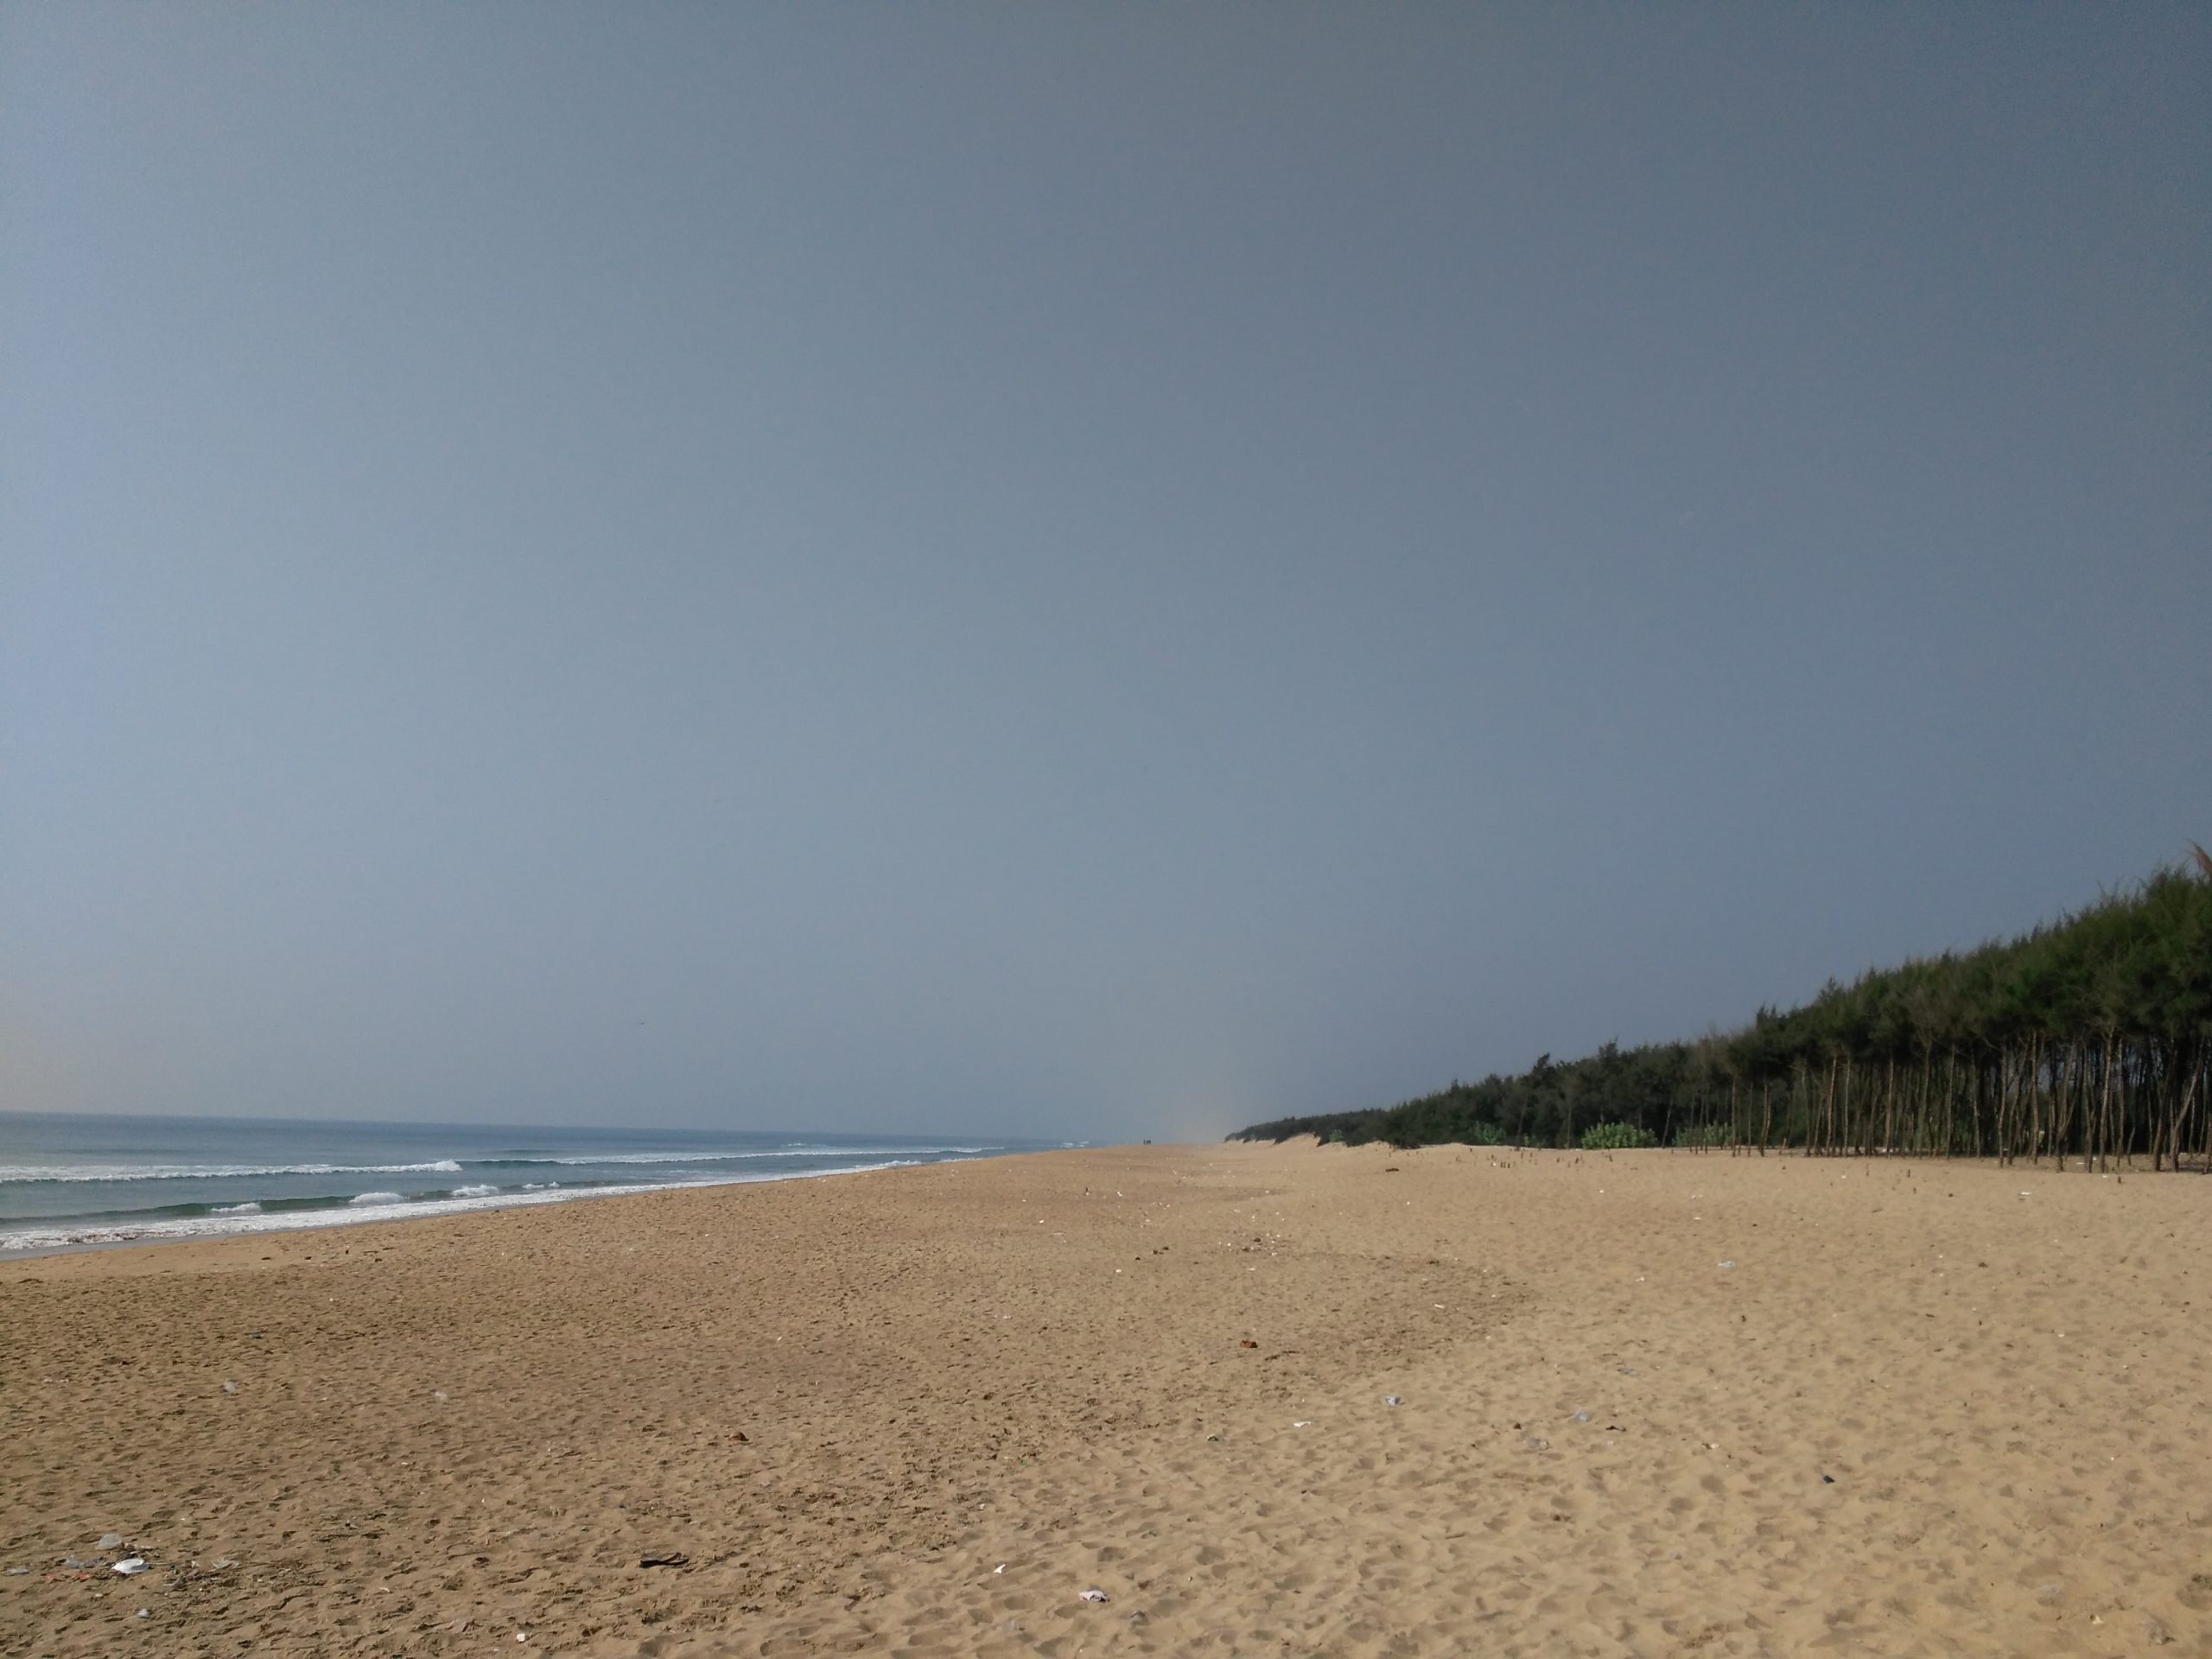 Chandrabagha Beach - Popular Place To Visit In Bhubaneswar